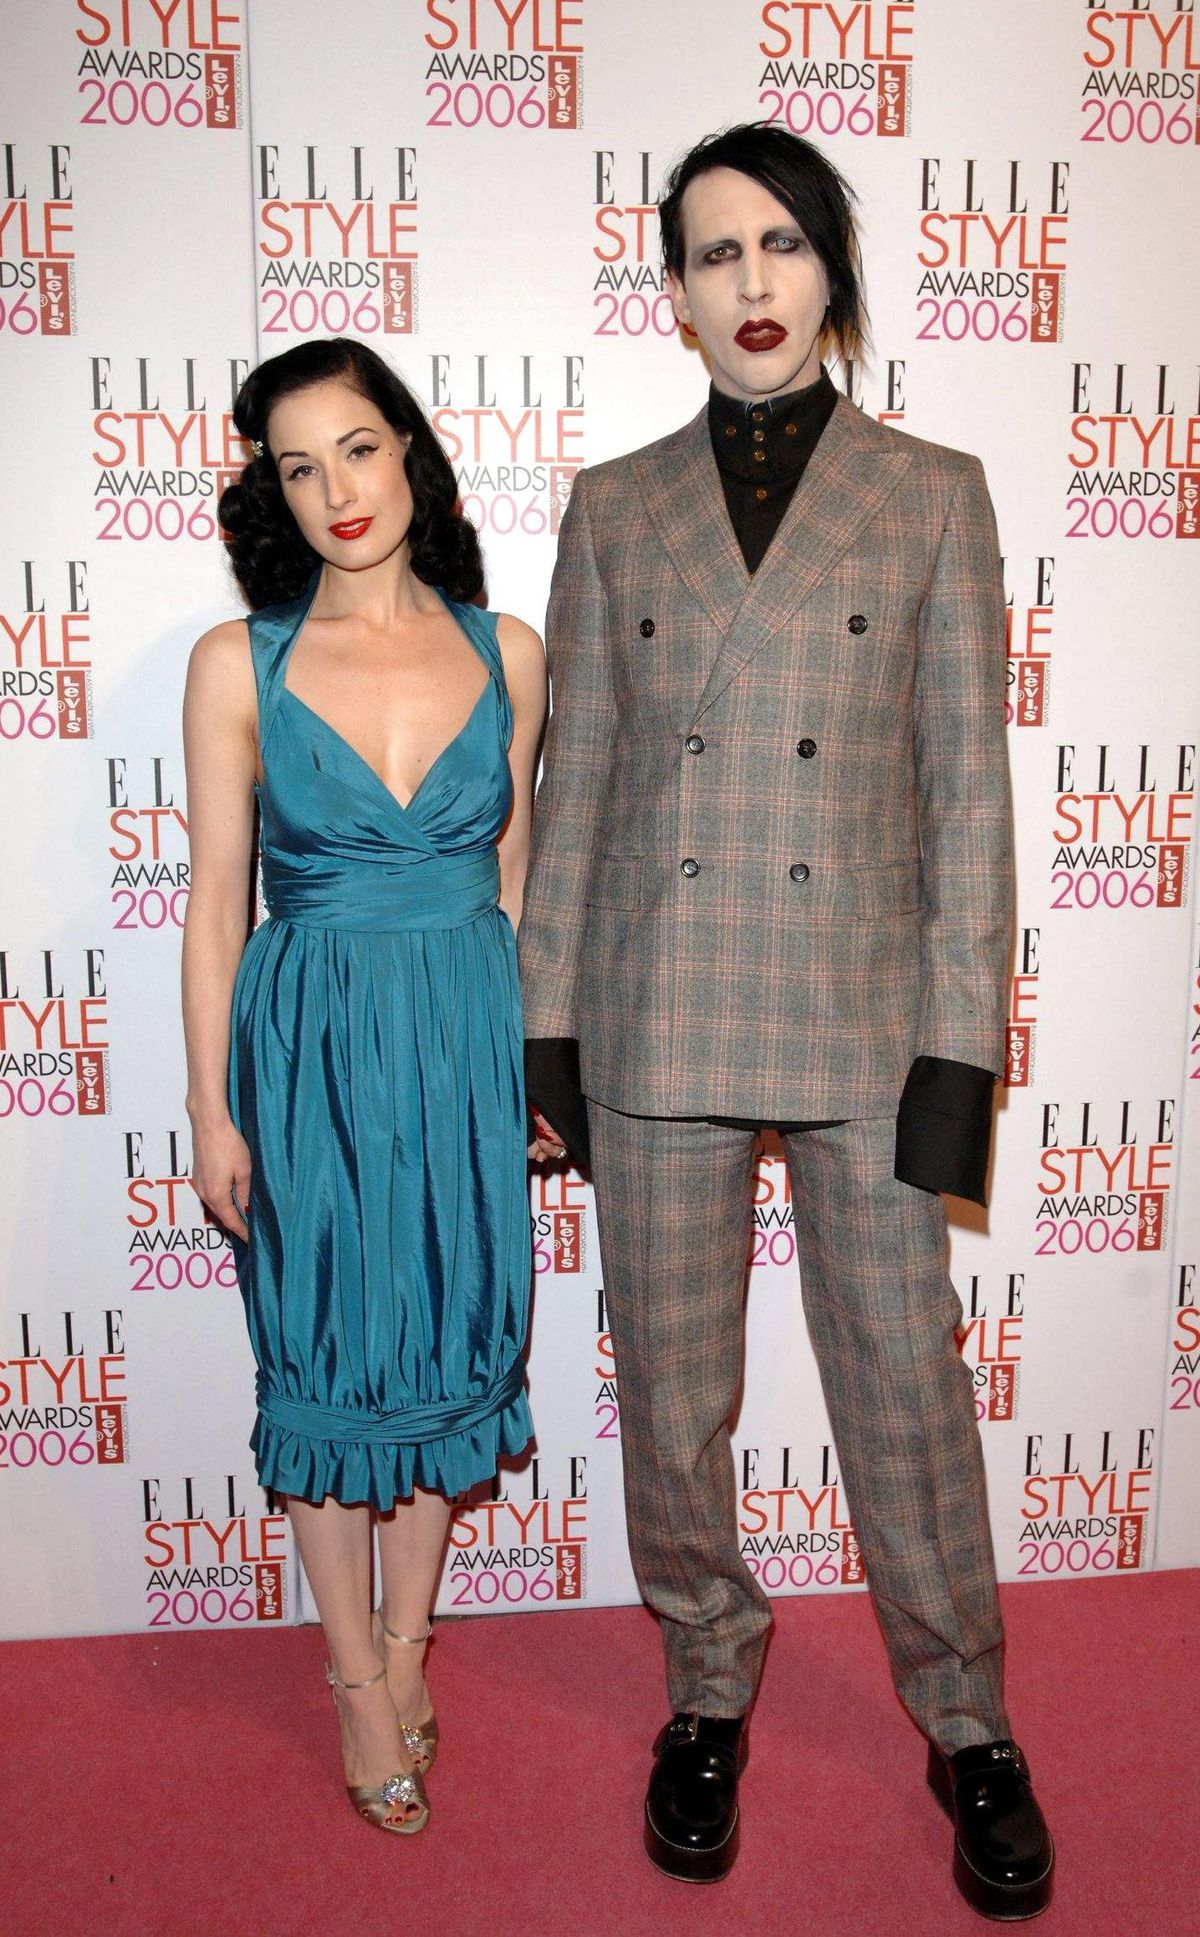 Dita Von Teese with ex husband Marilyn Manson at the Elle Style Awards 2006